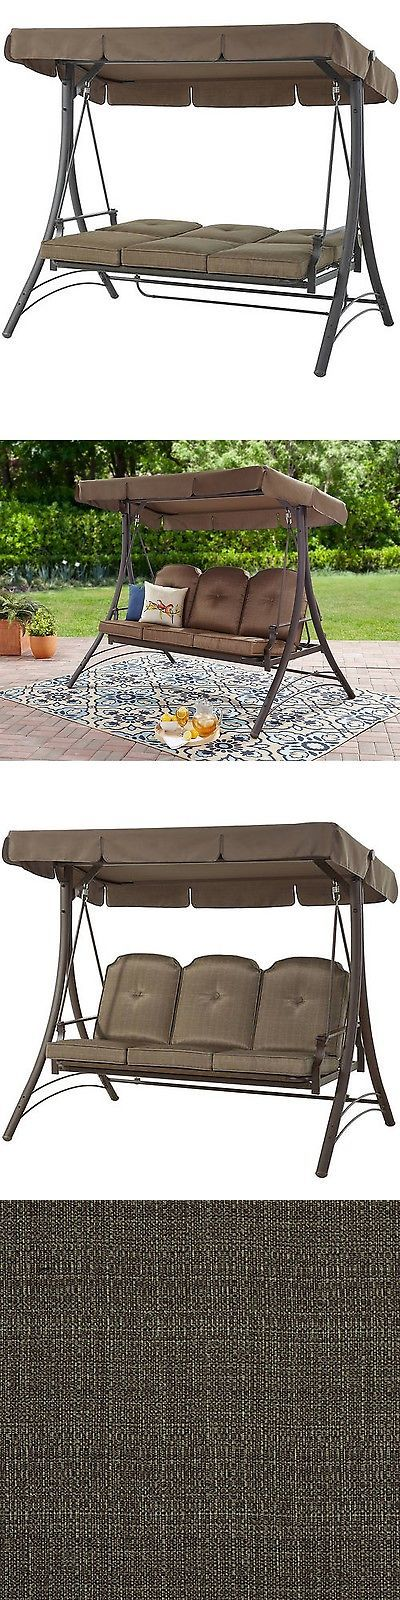 Swings 79700: Outdoor Patio Furniture 3 Person Swinging Garden Bench Hammock With Canopy Shade -> BUY IT NOW ONLY: $221.85 on eBay!